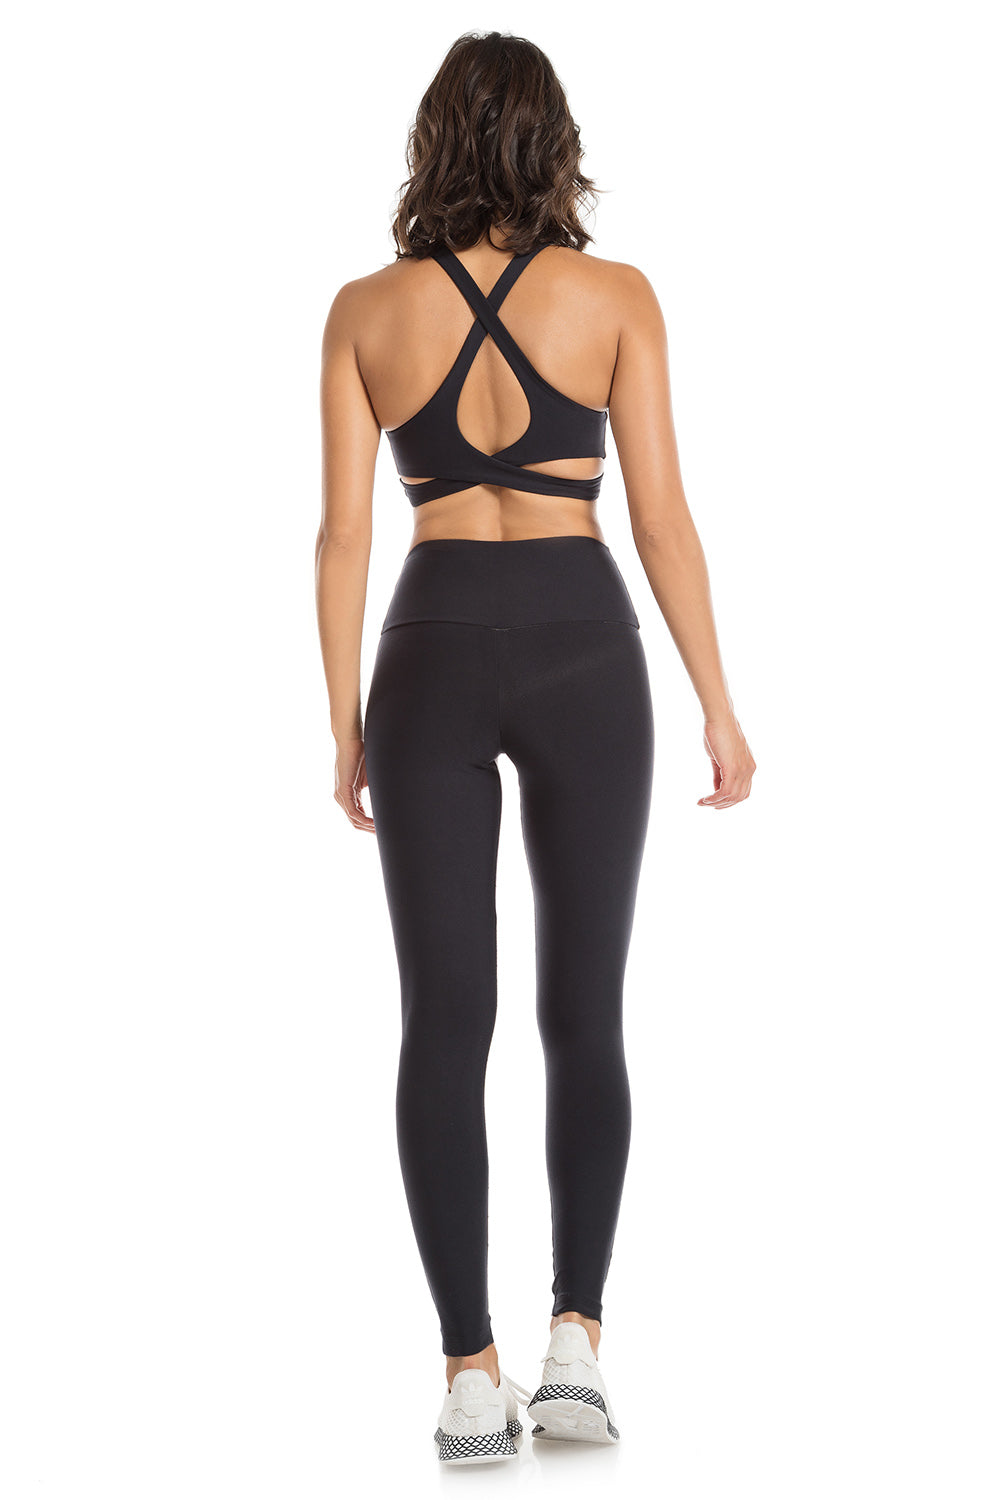 Next Sight Legging 2